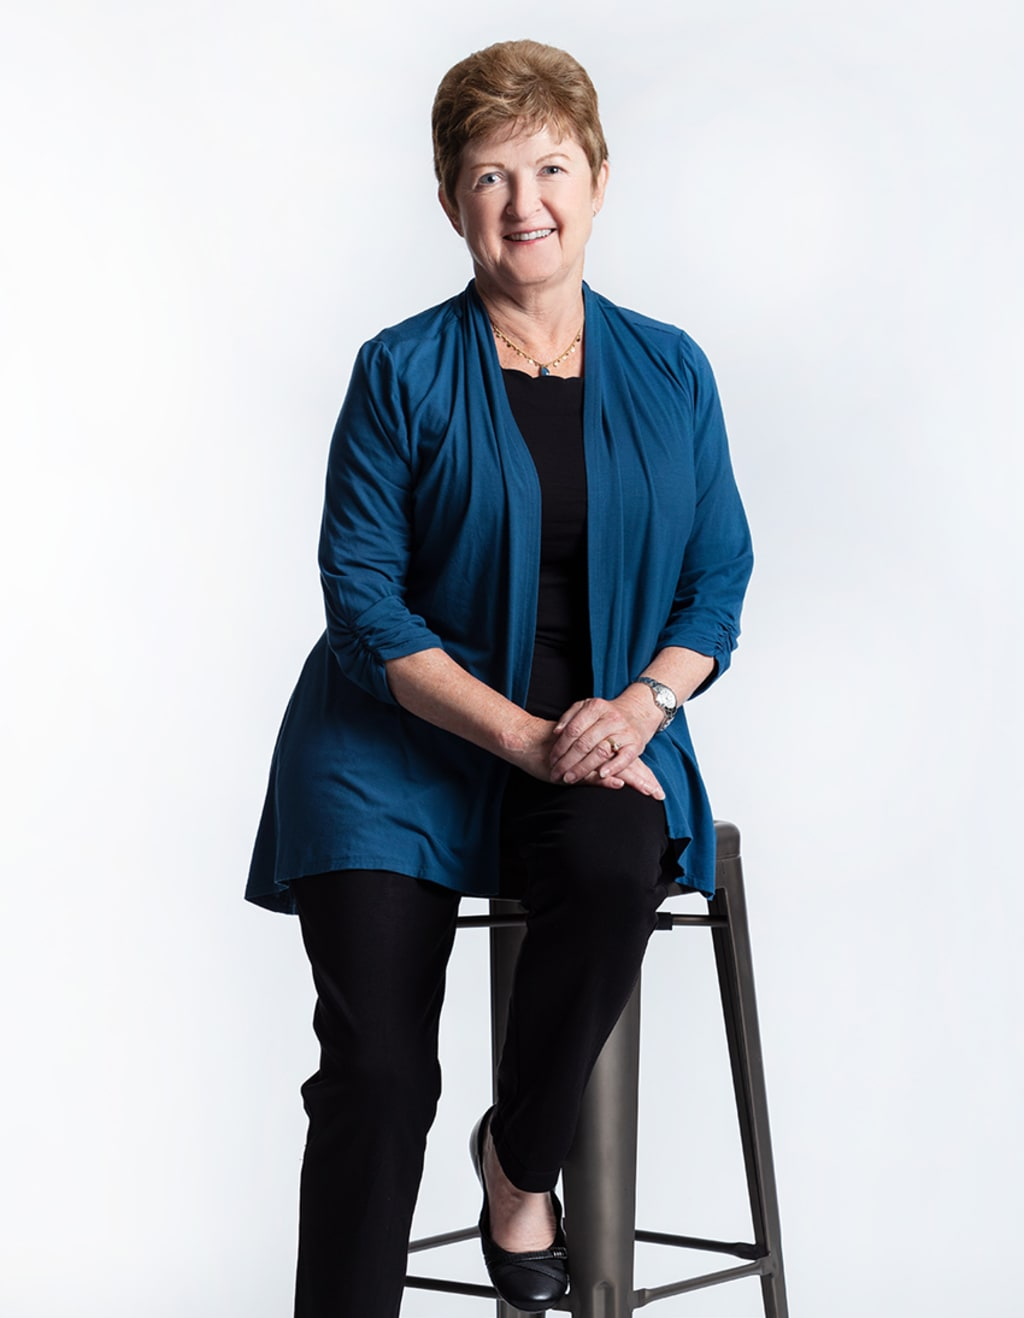 Jan Eddy sitting on a chair